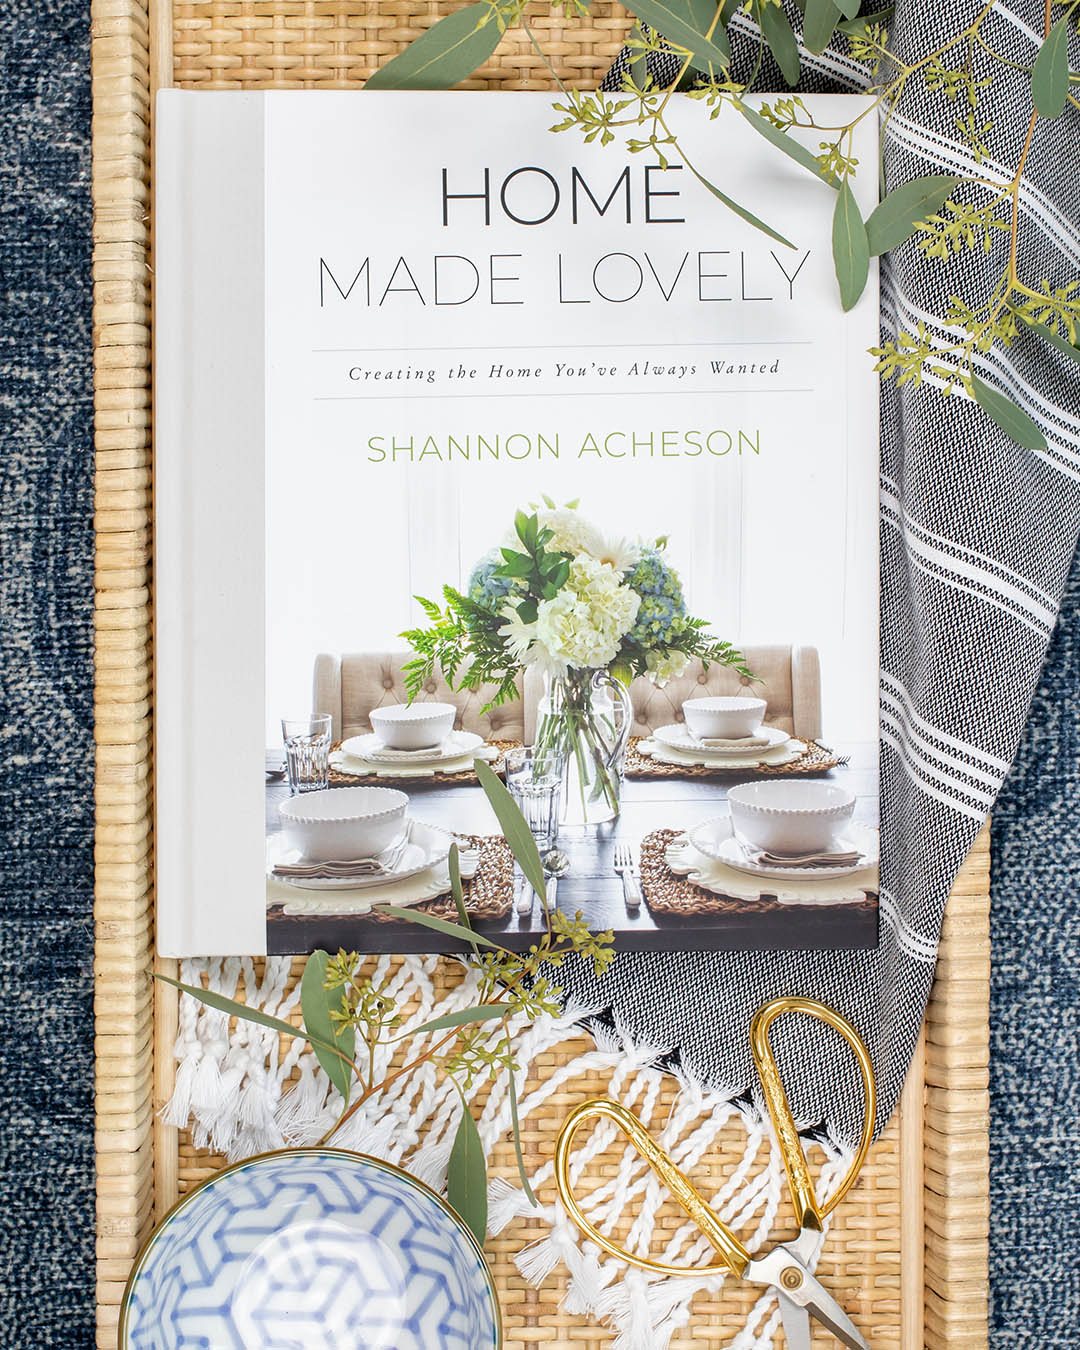 This is my review of Shannon Acheson's new Home Made Lovely book, a great book about decorating to create a home you love, and then sharing it with others.